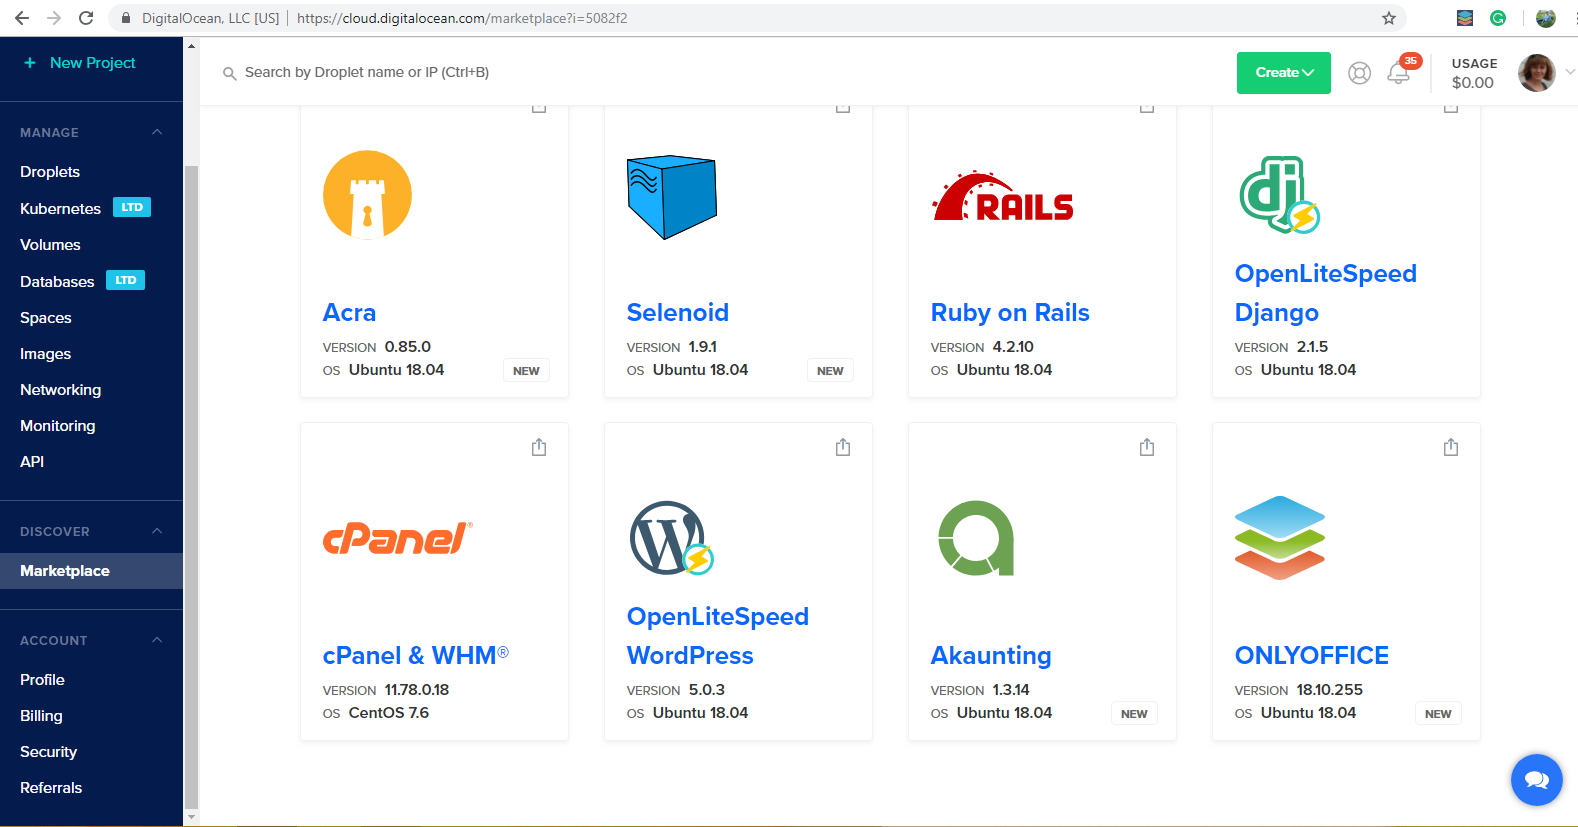 ONLYOFFICE on the DigitalOcean Marketplace | ONLYOFFICE Blog